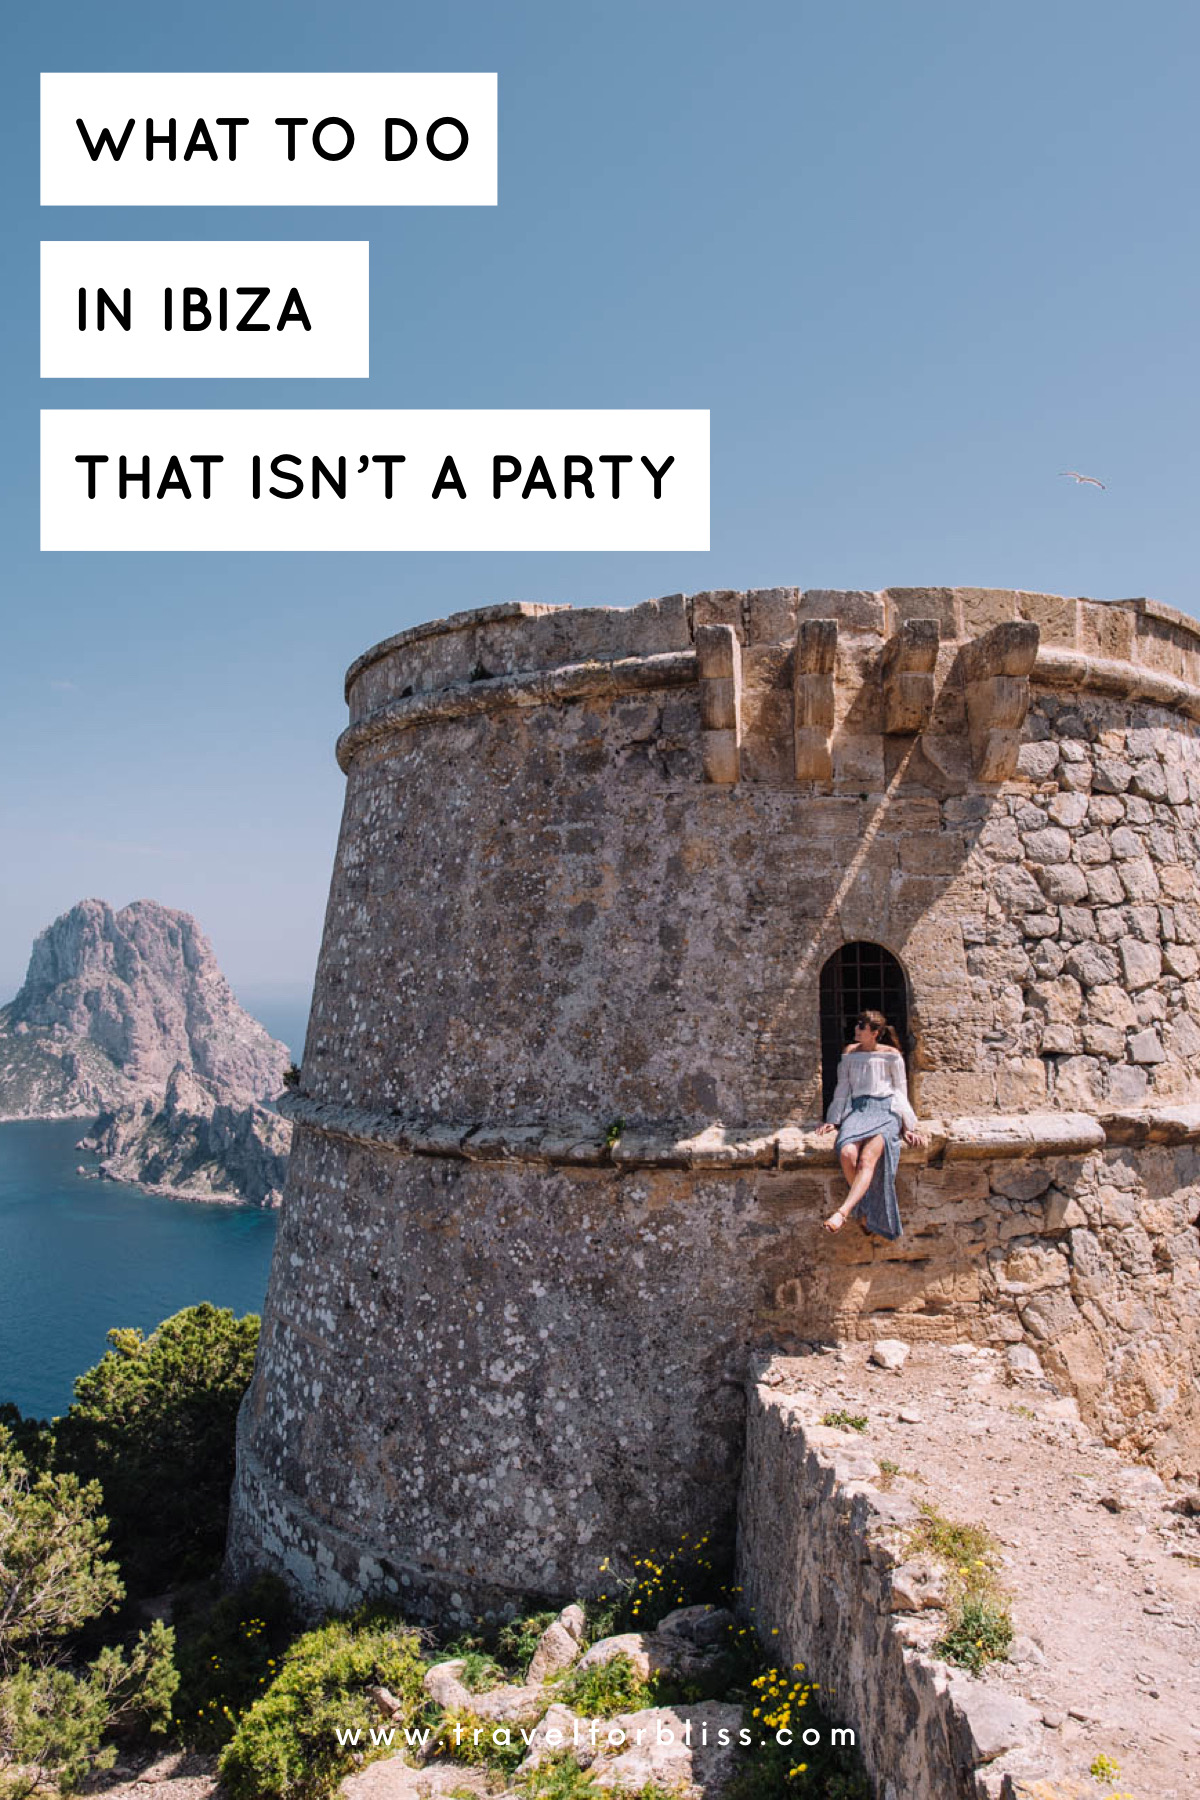 Discover what to do in Ibiza in the Off season. Ibiza has many great things to do.